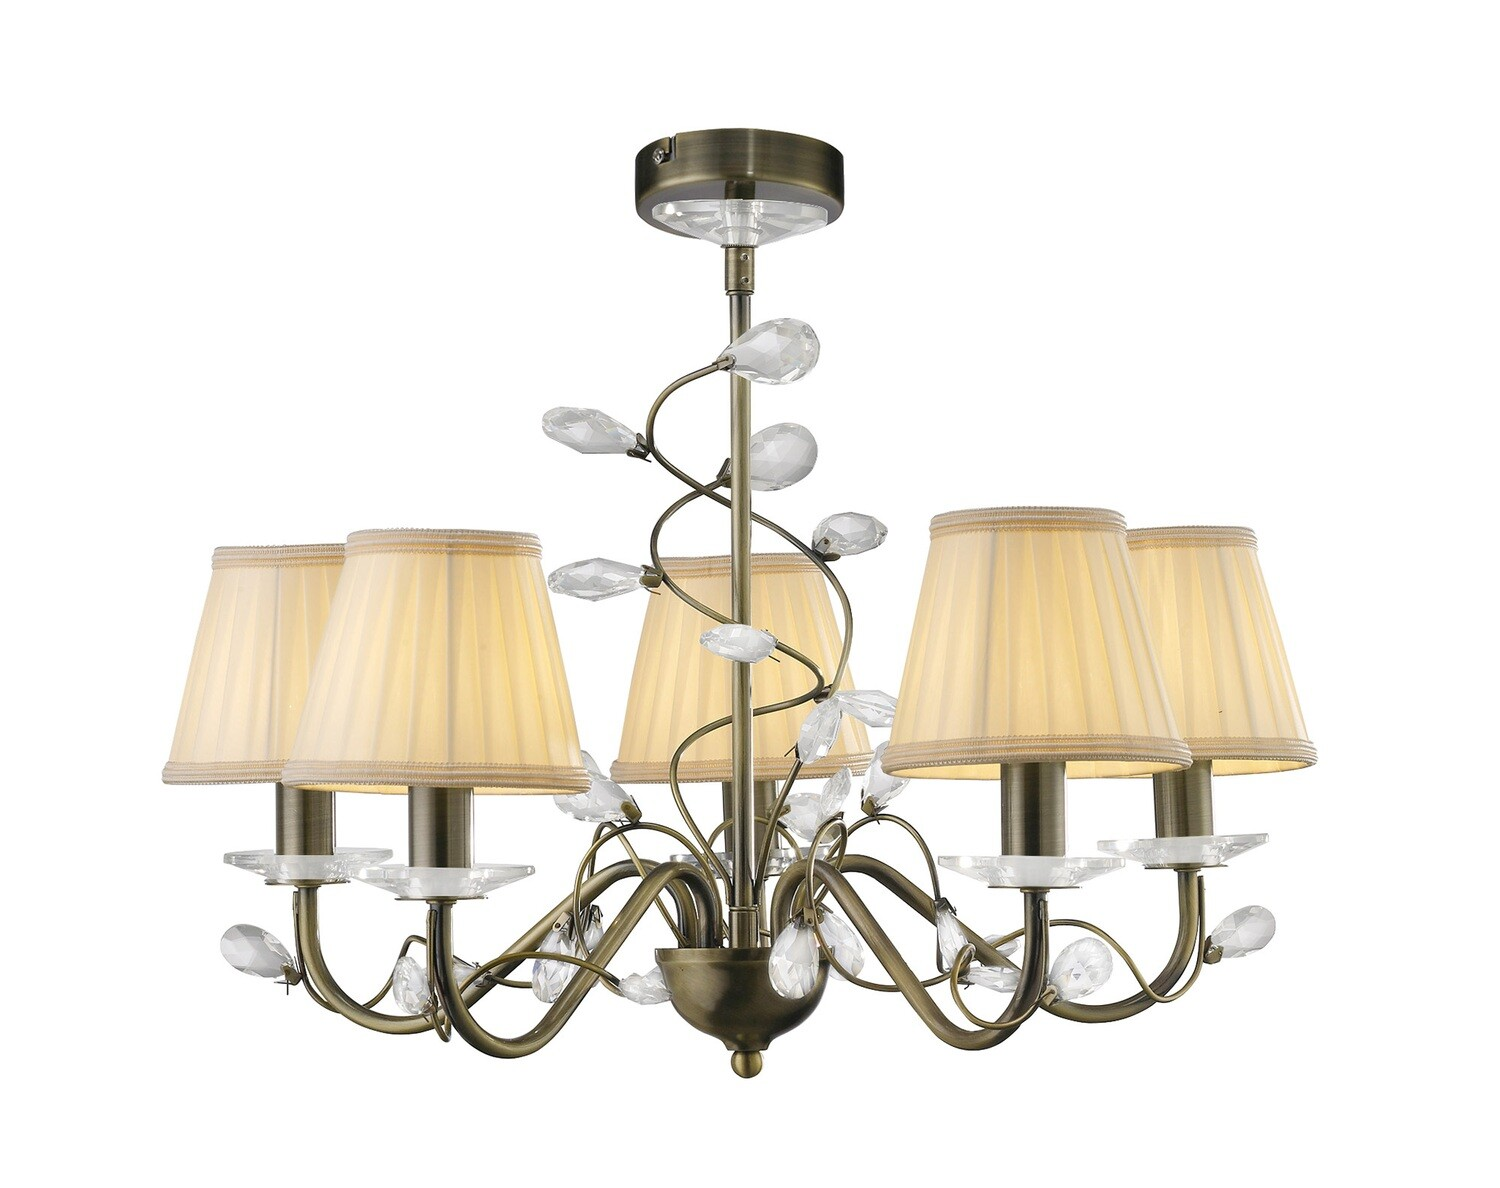 Willow Pendant WITH SHADE 5 Light E14 Antique Brass/Crystal